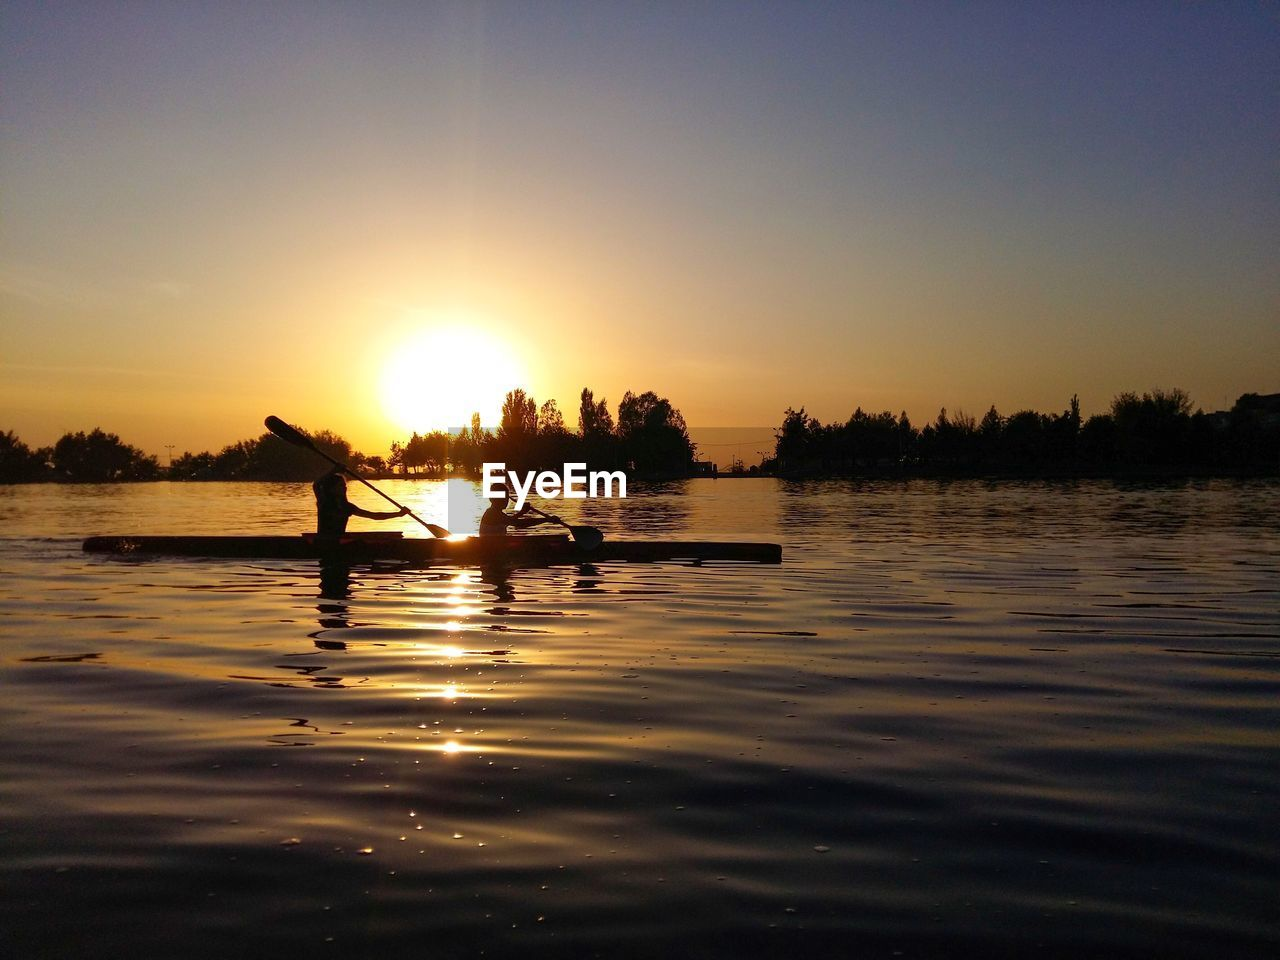 water, sky, sunset, silhouette, real people, nautical vessel, beauty in nature, nature, scenics - nature, sun, waterfront, lifestyles, one person, men, mode of transportation, sunlight, transportation, leisure activity, outdoors, rowing, paddling